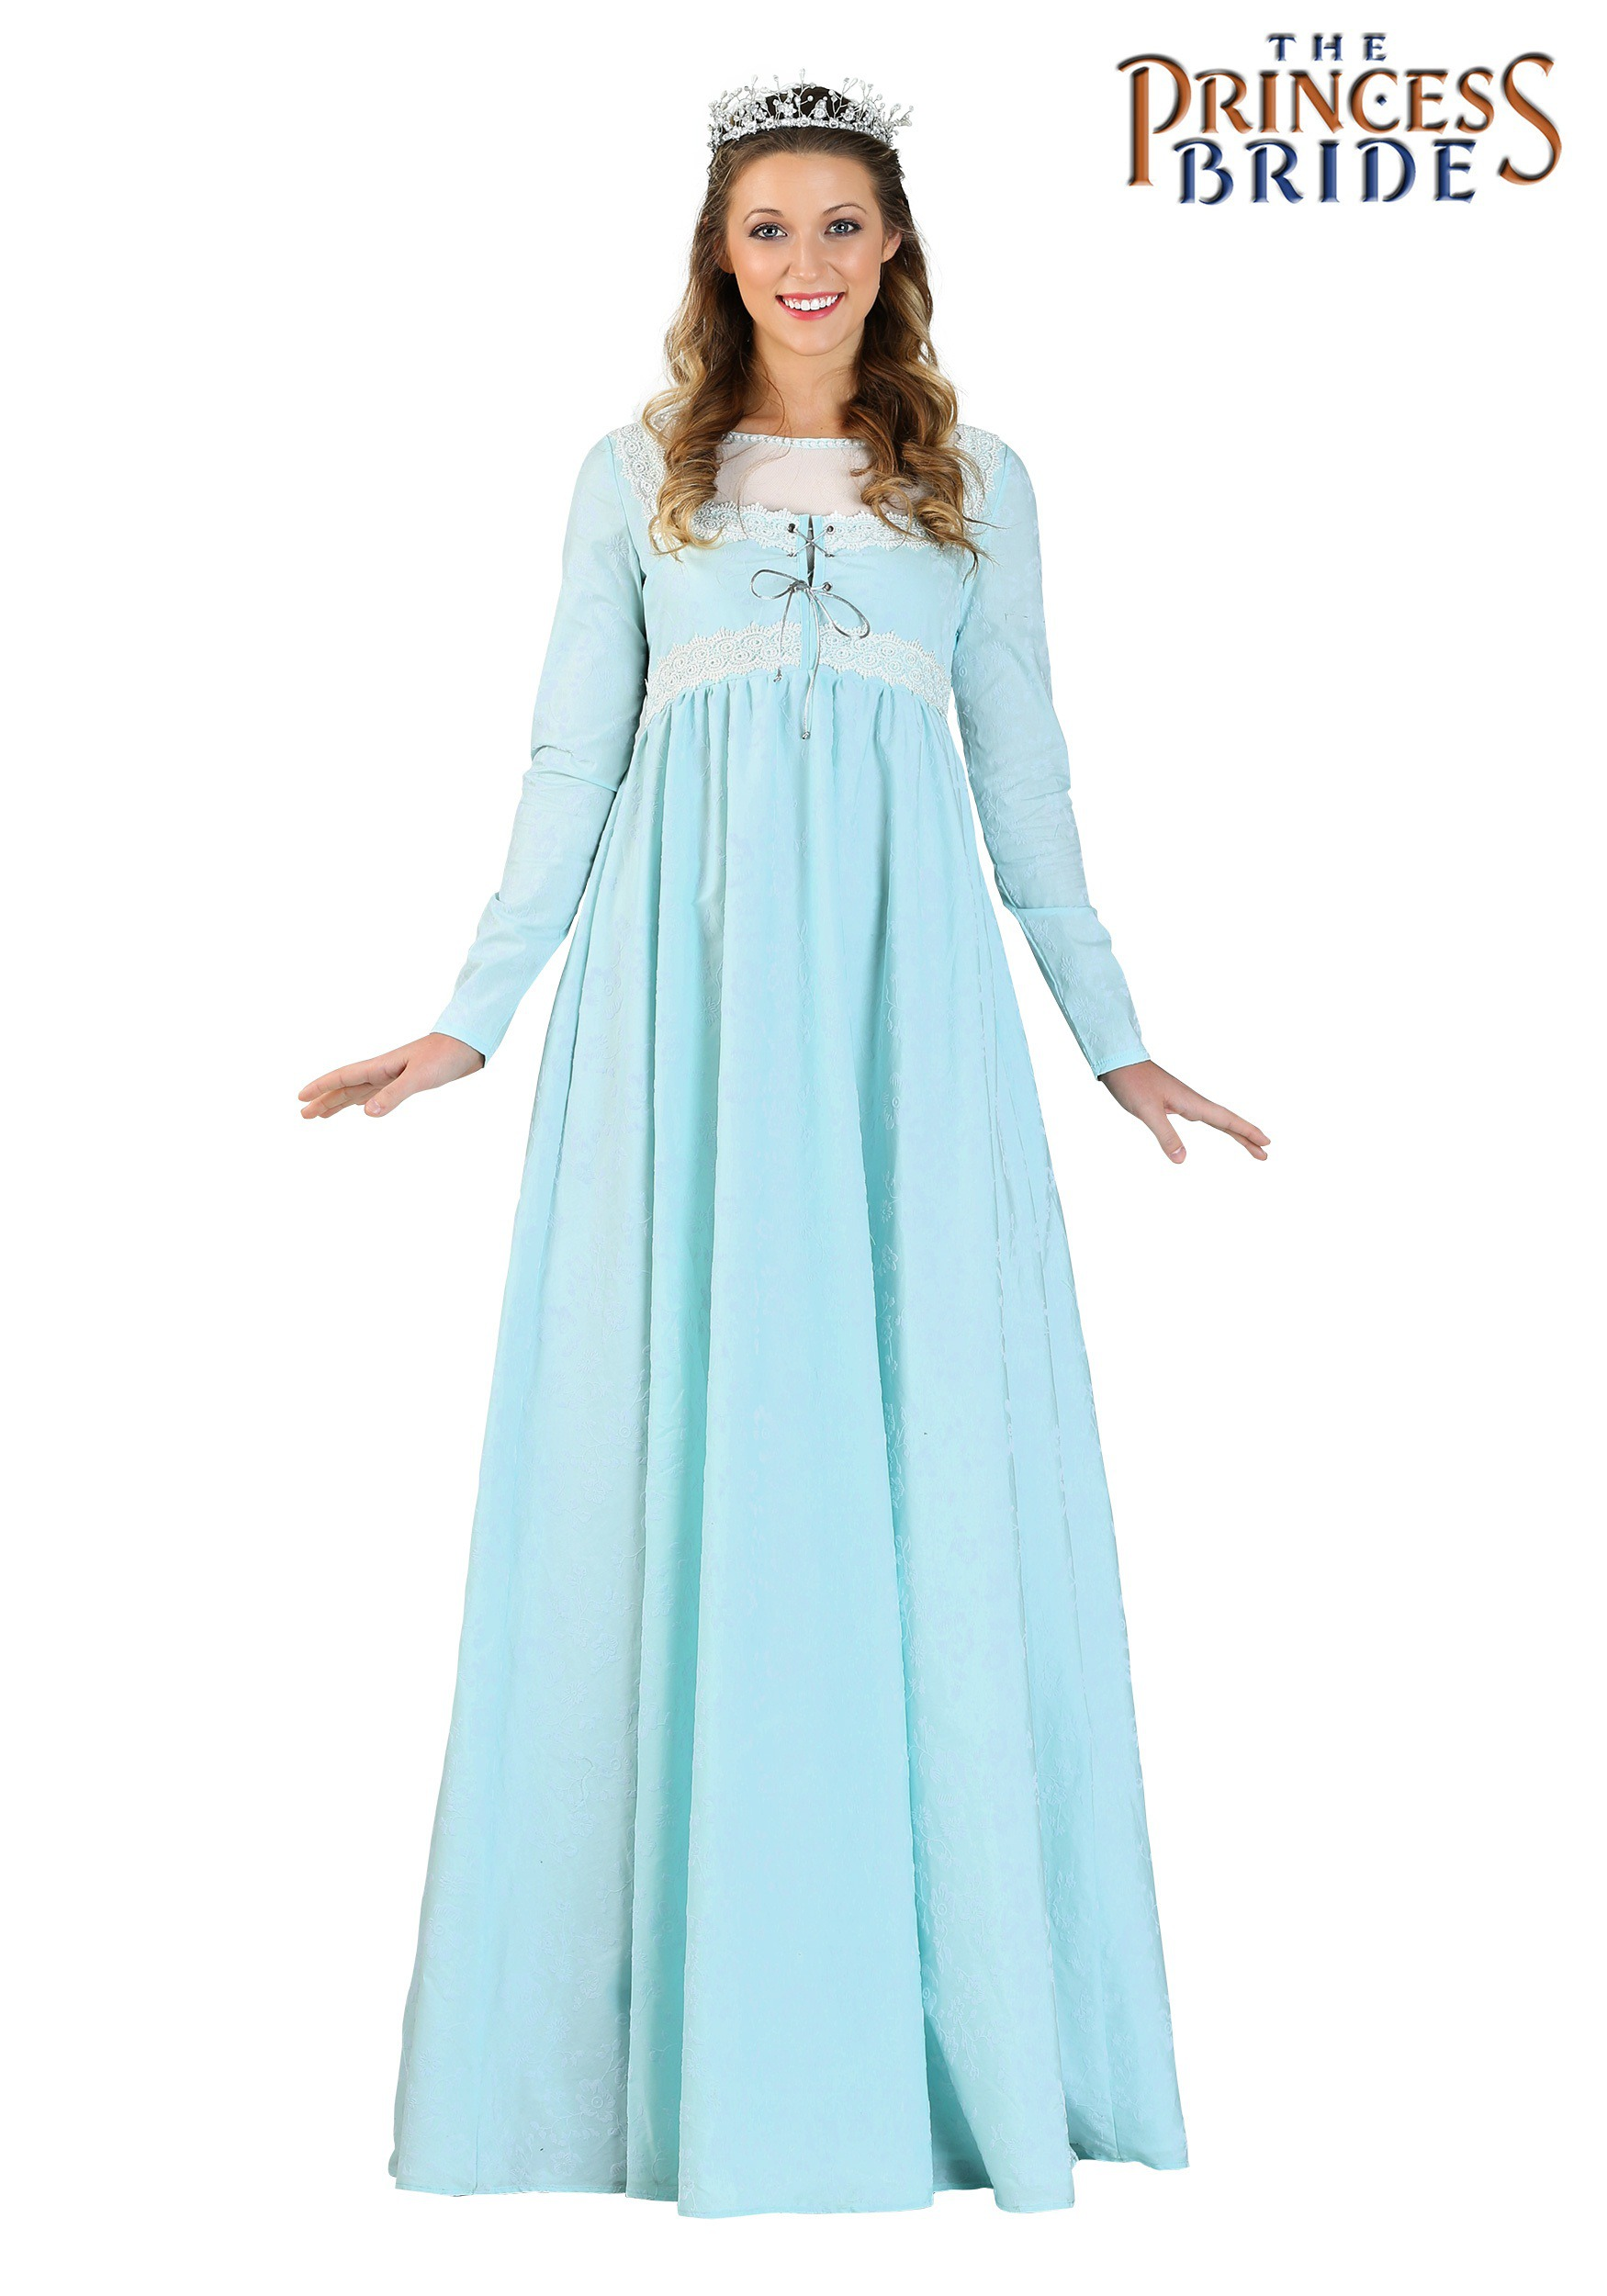 Princess Bride Buttercup Wedding Dress for Women